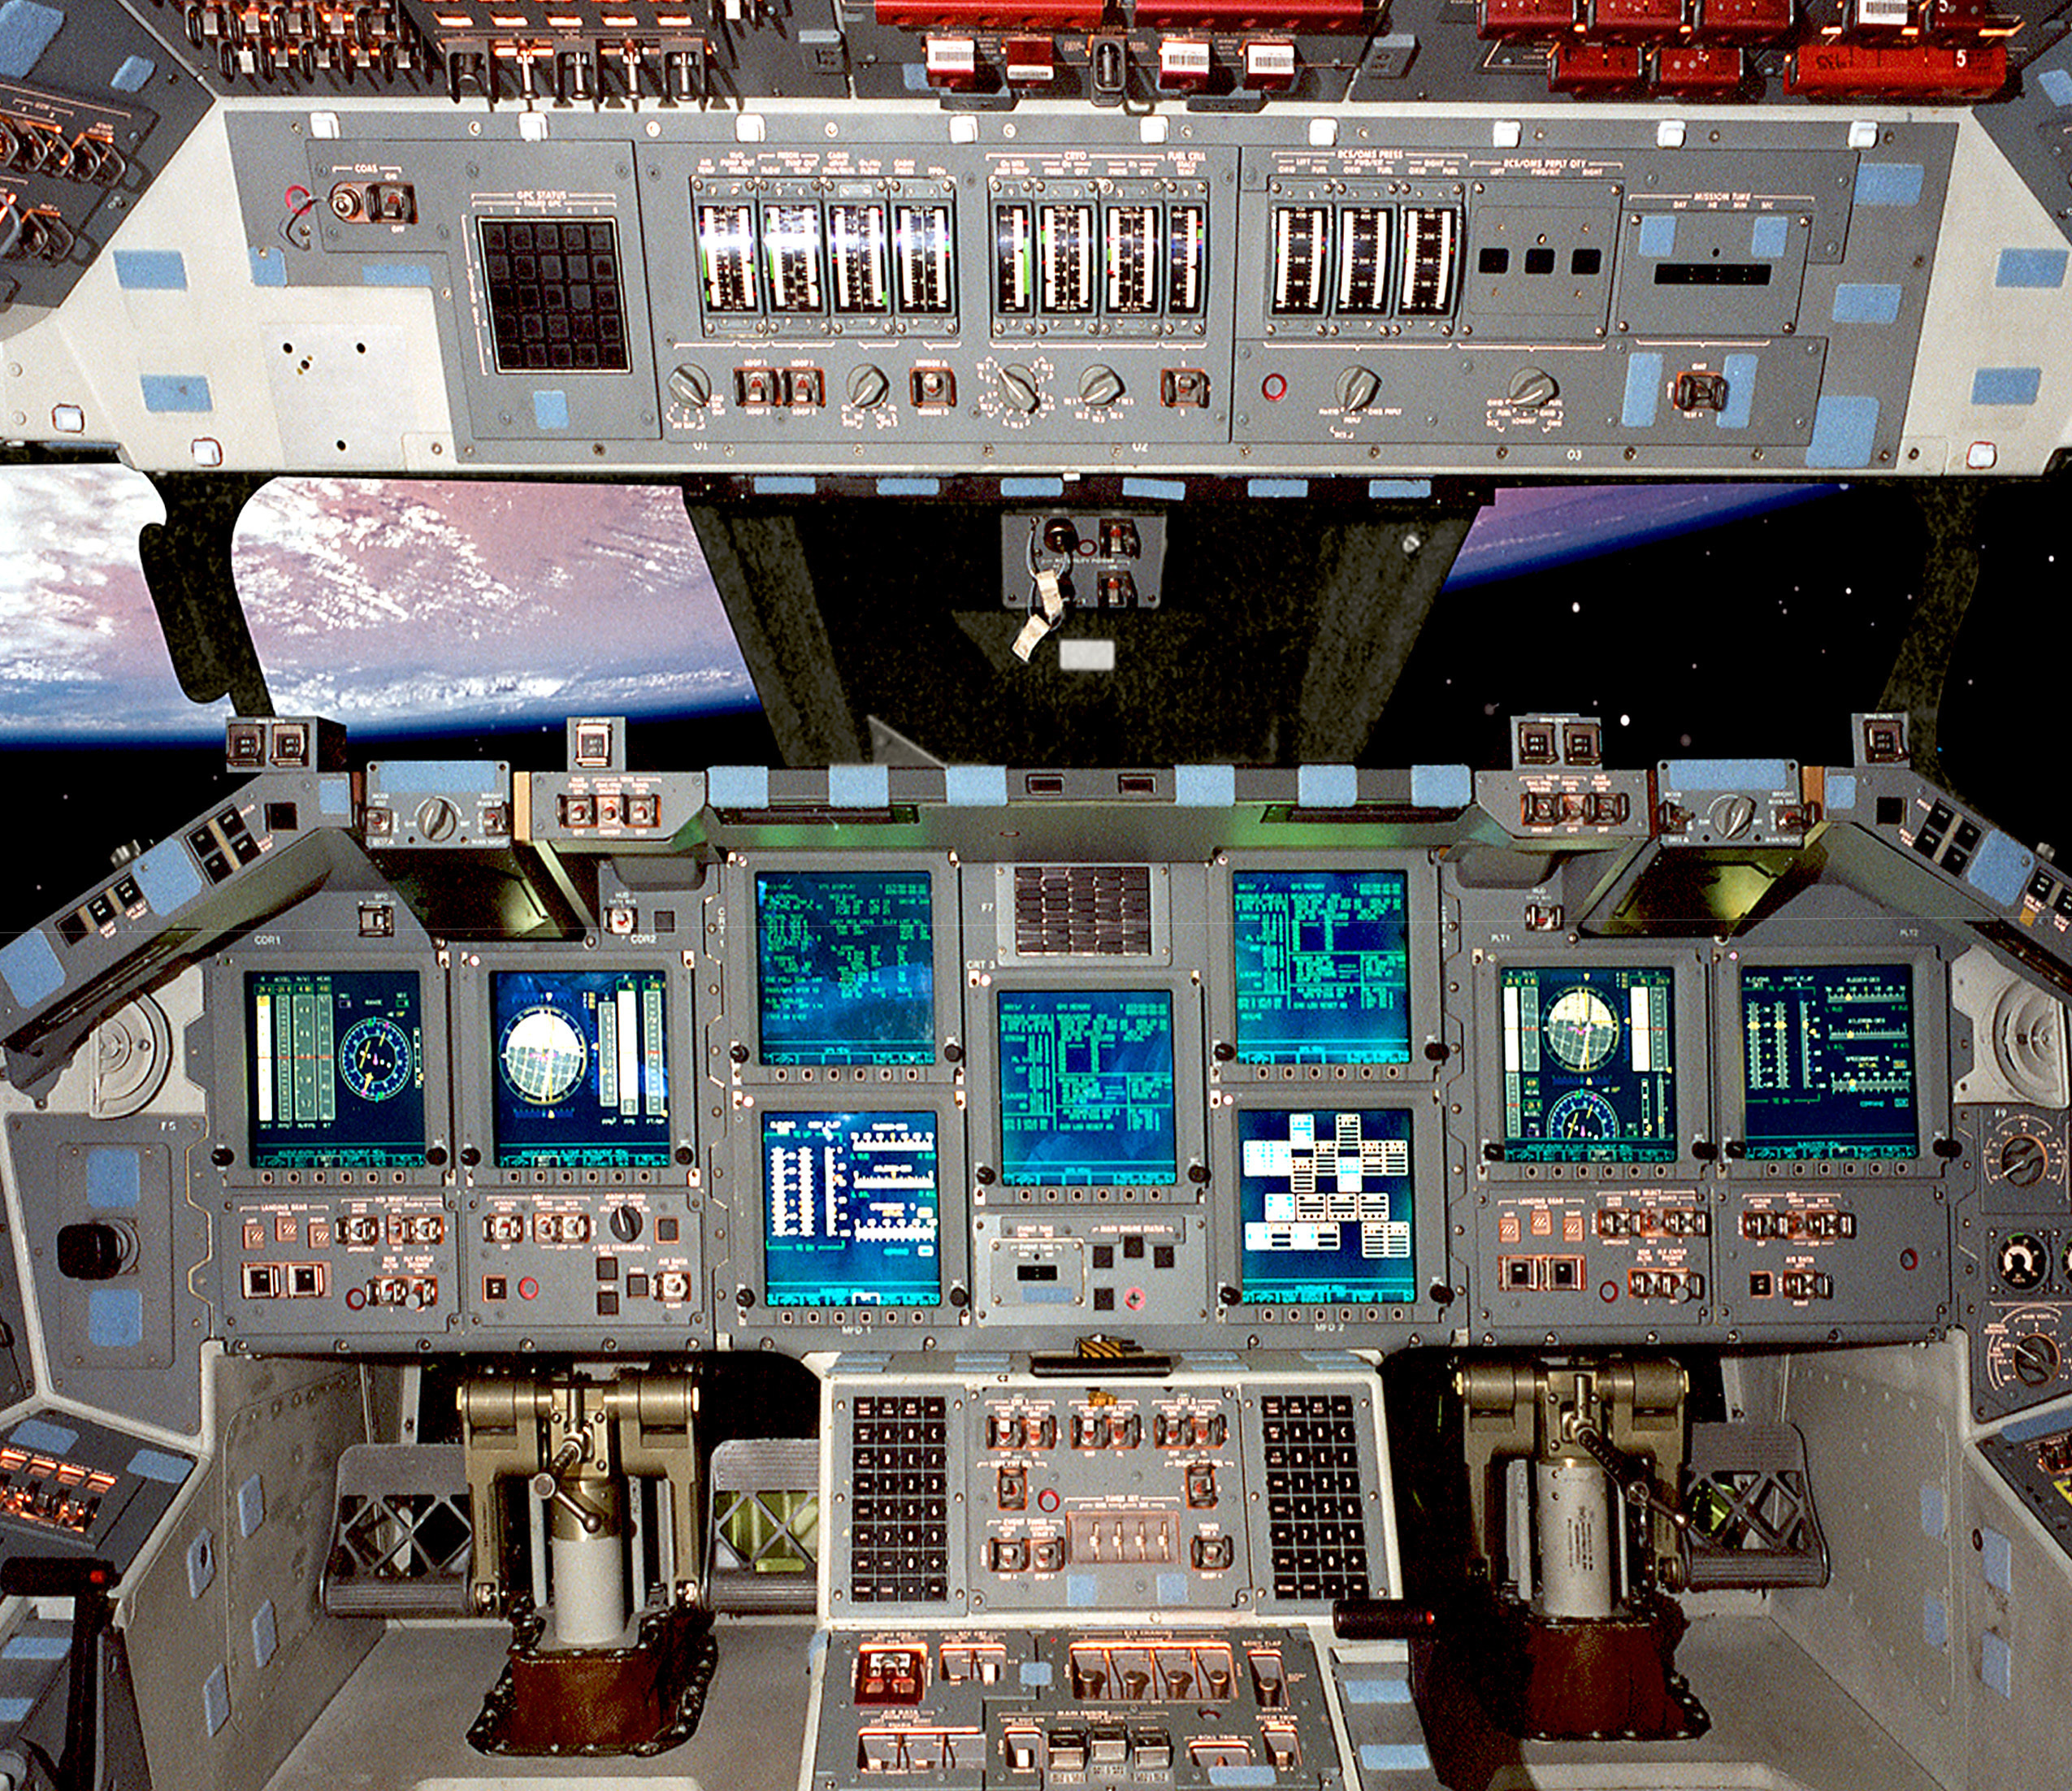 vehicle Space shuttle cockpit HD Wallpaper